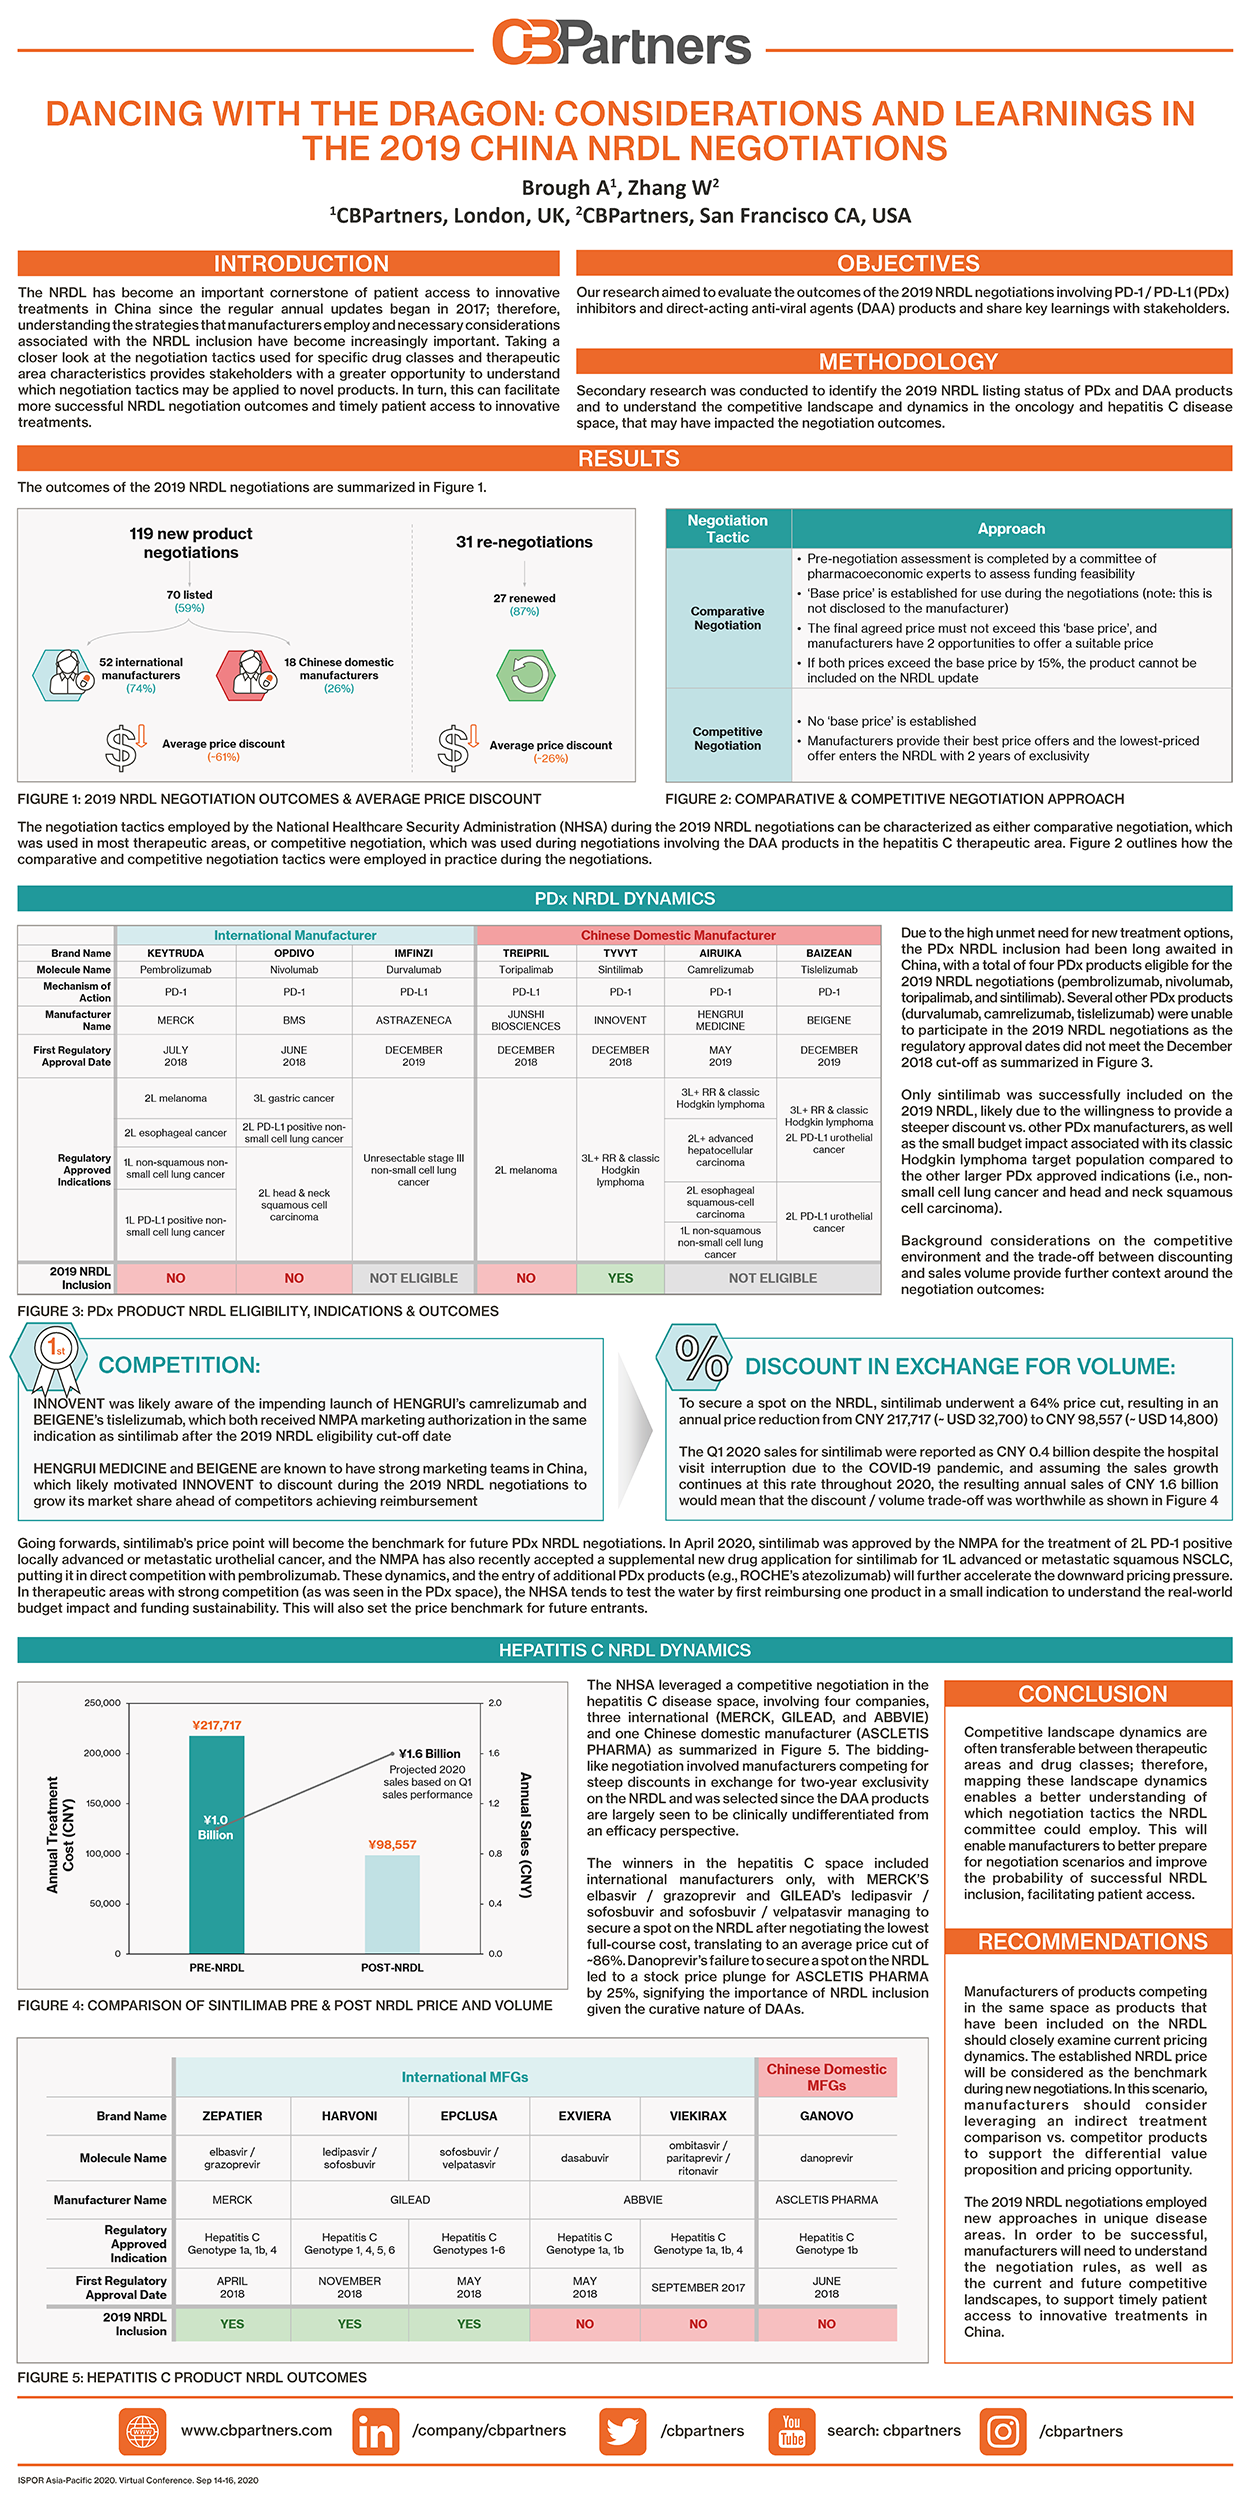 ISPOR Asia-Pacific 2020 Research Poster